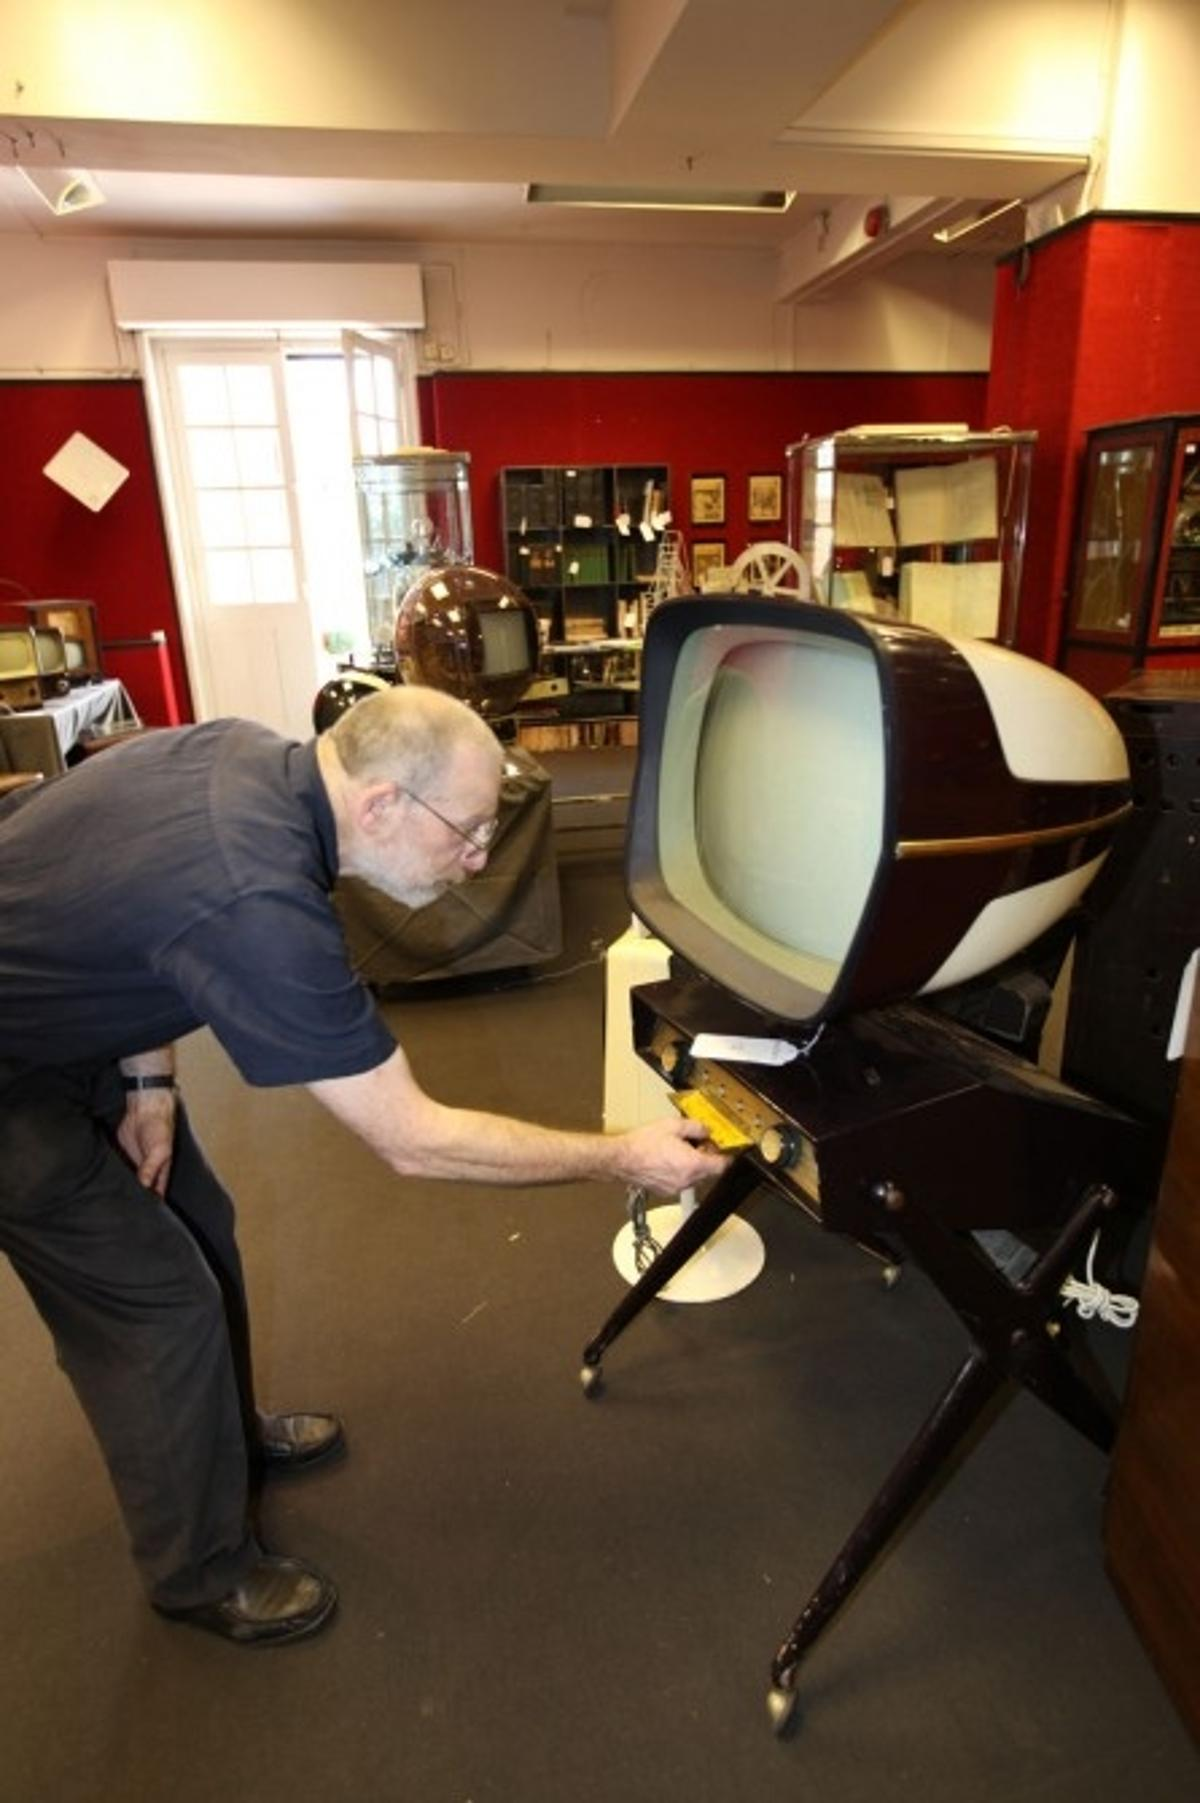 The auction includes 758 examples of almost all forms of early technology including many firsts – and the largest privately held collection of early televisions in the world.